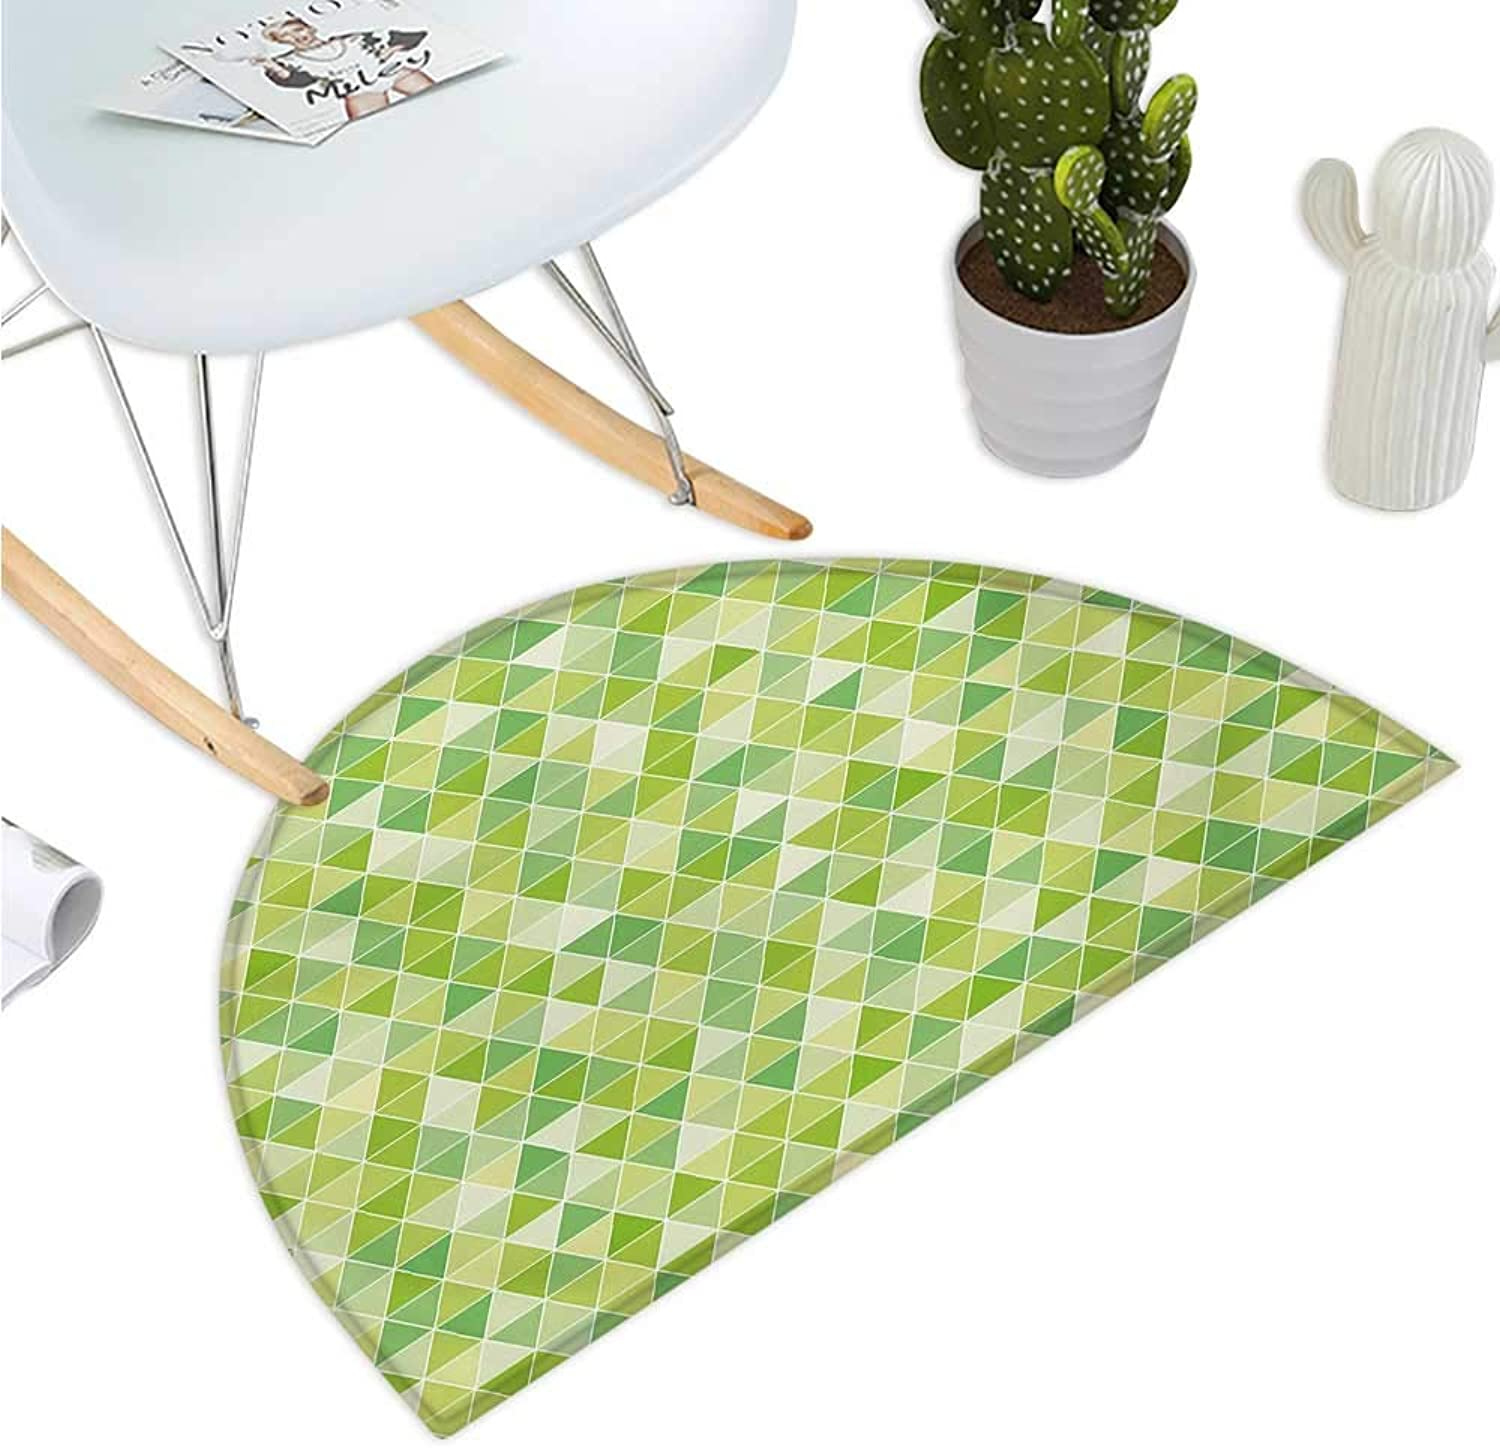 Lime Green Semicircular Cushion Triangles Geometry Figures Modern Digital Pyramids Soft Icons Graphic Entry Door Mat H 47.2  xD 70.8  Pale and Fern Green